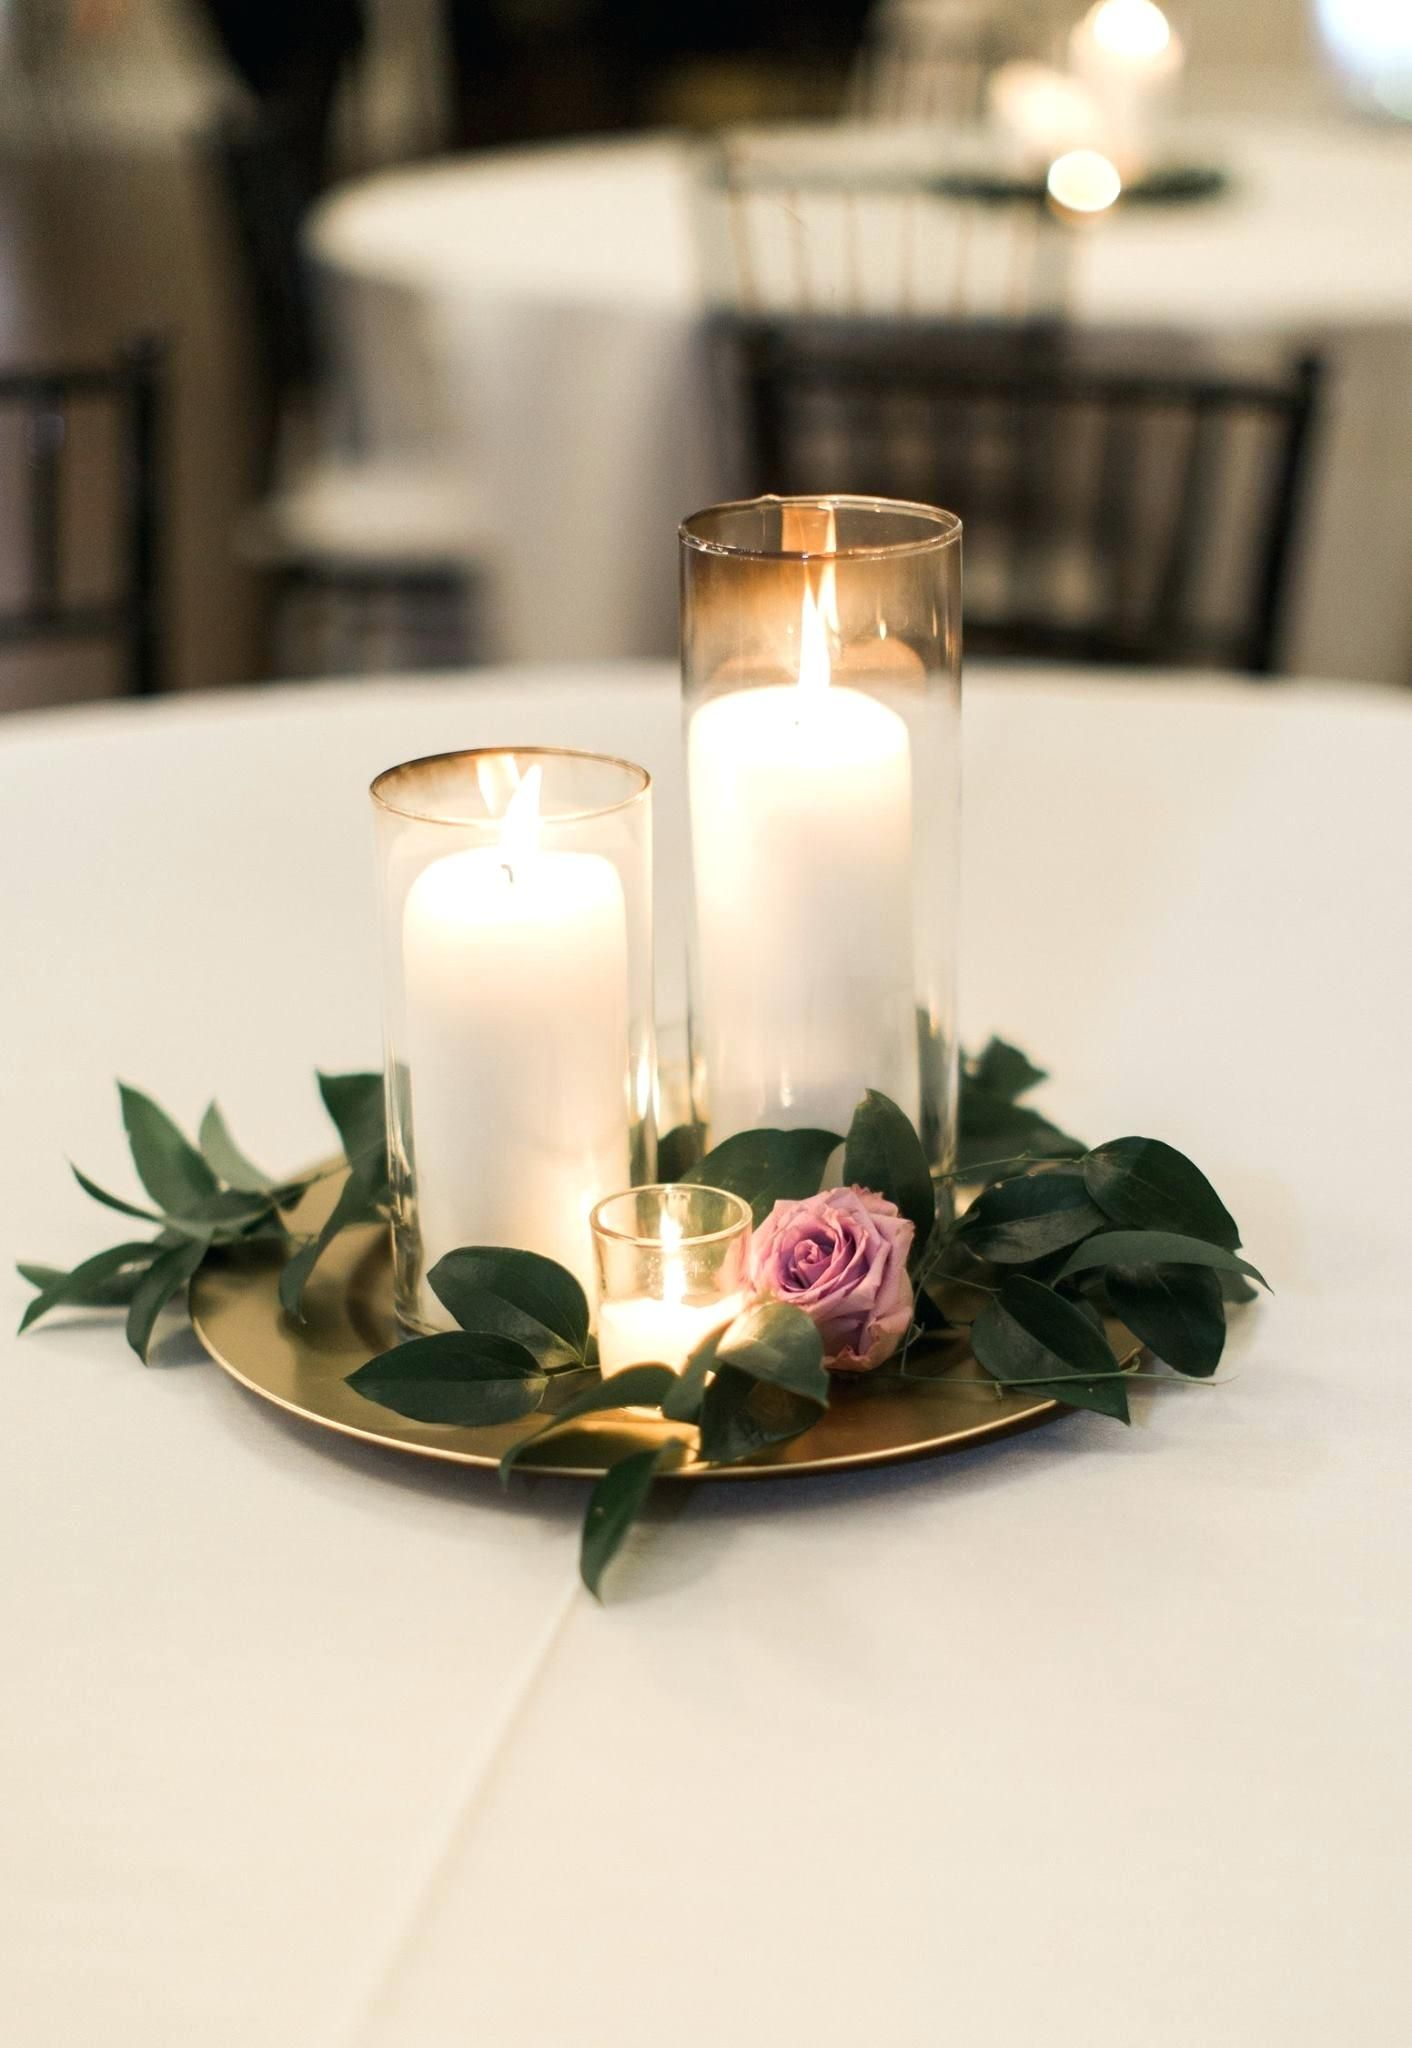 diy wedding centerpieces ideas on a budget cake table decoration simple centerpiece candle. Black Bedroom Furniture Sets. Home Design Ideas